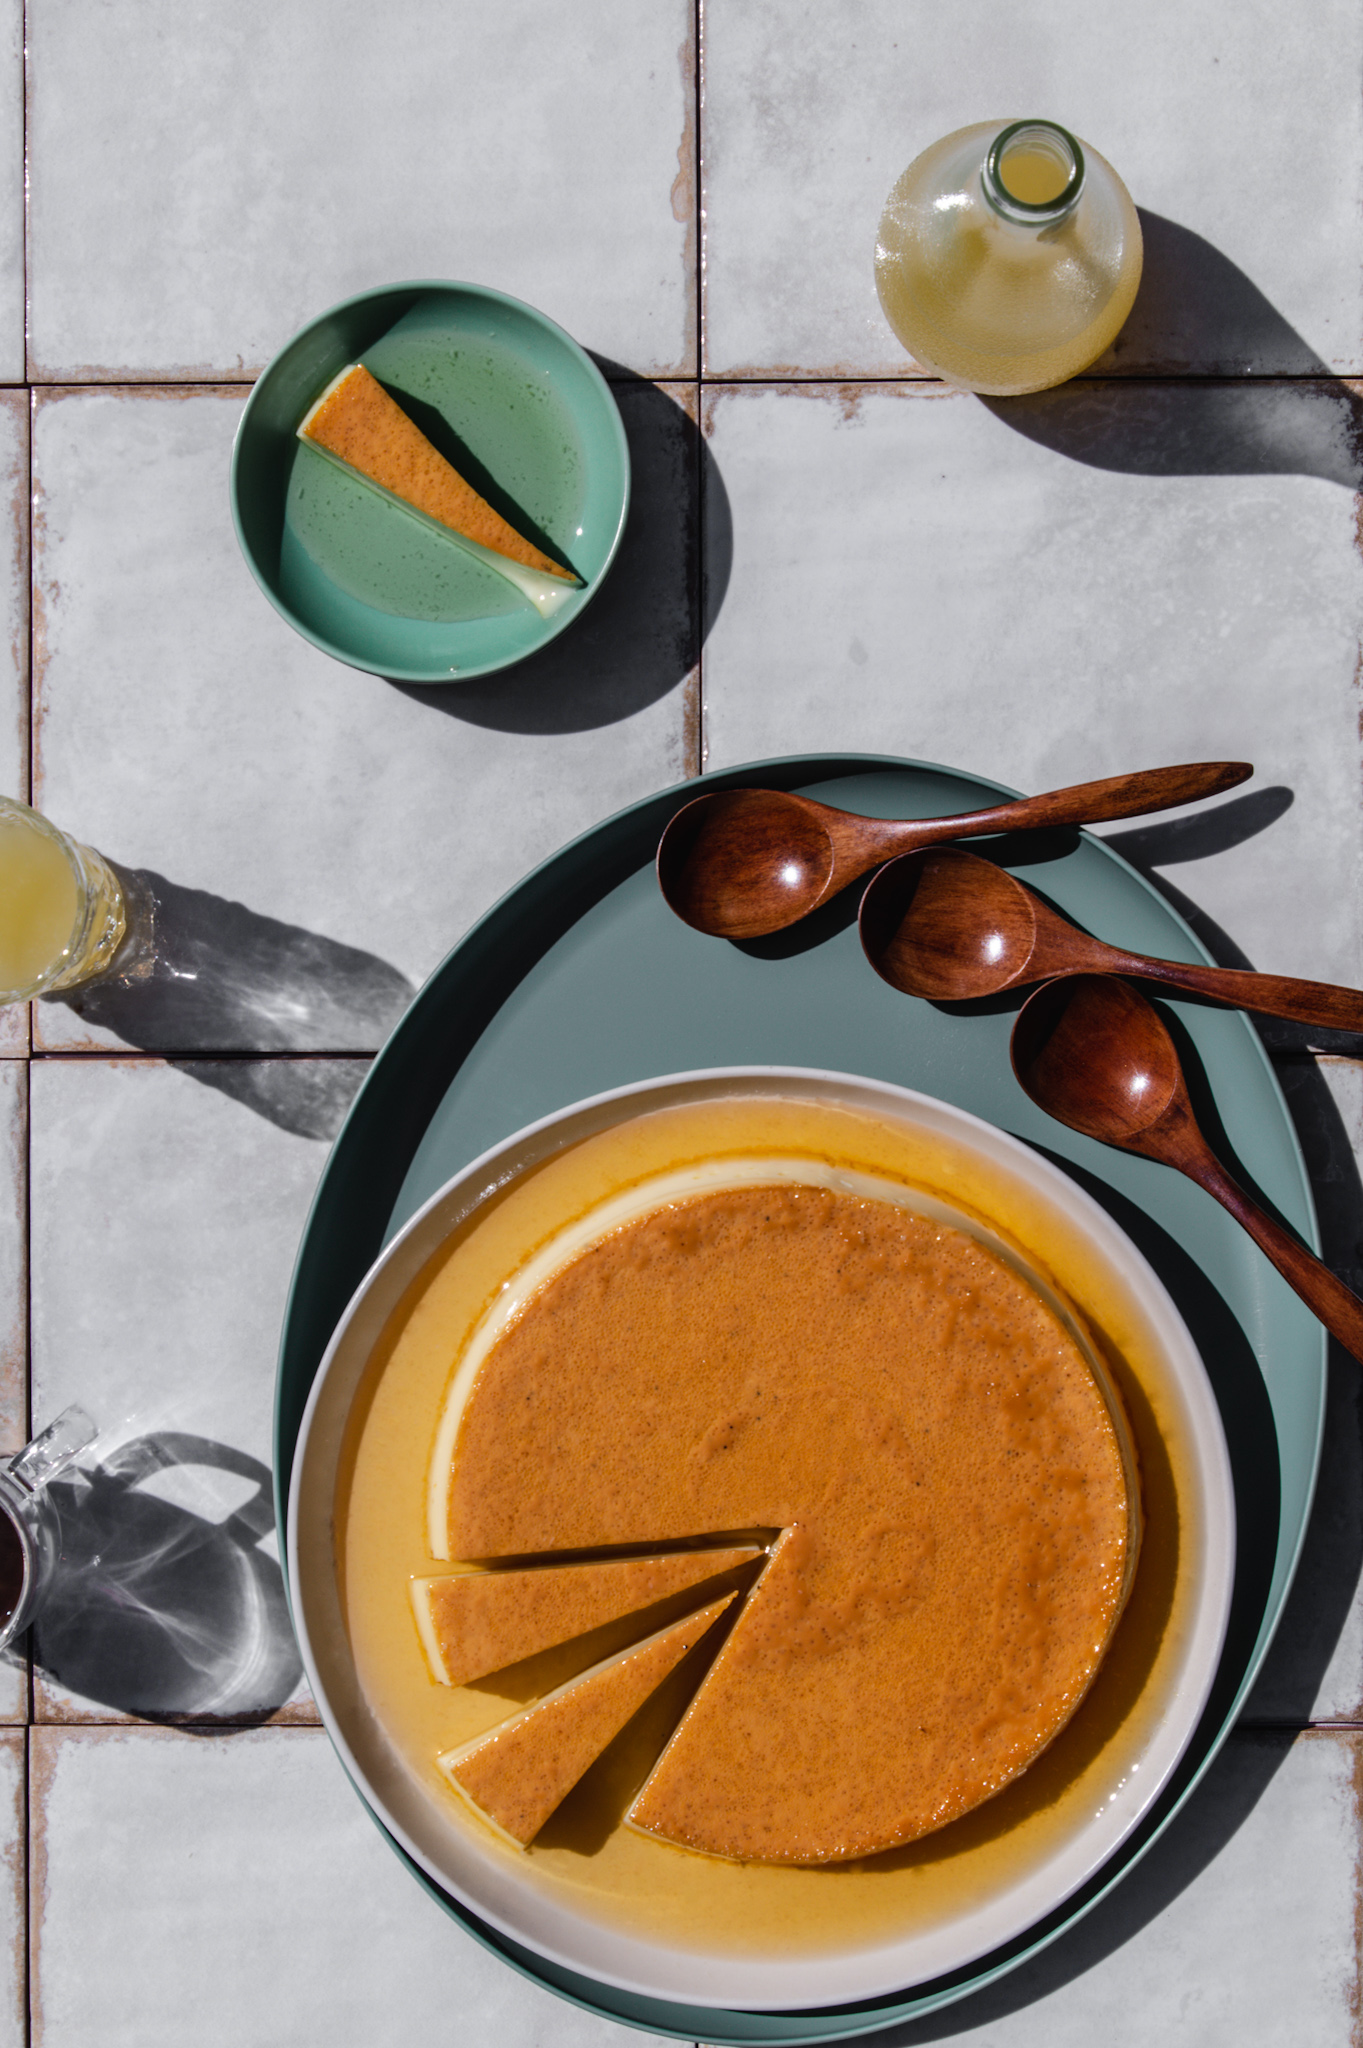 The espresso in coffee creme caramel brings complexity the lemon brings surprise. And brightness. It's like squeezing a lemon over whisky.